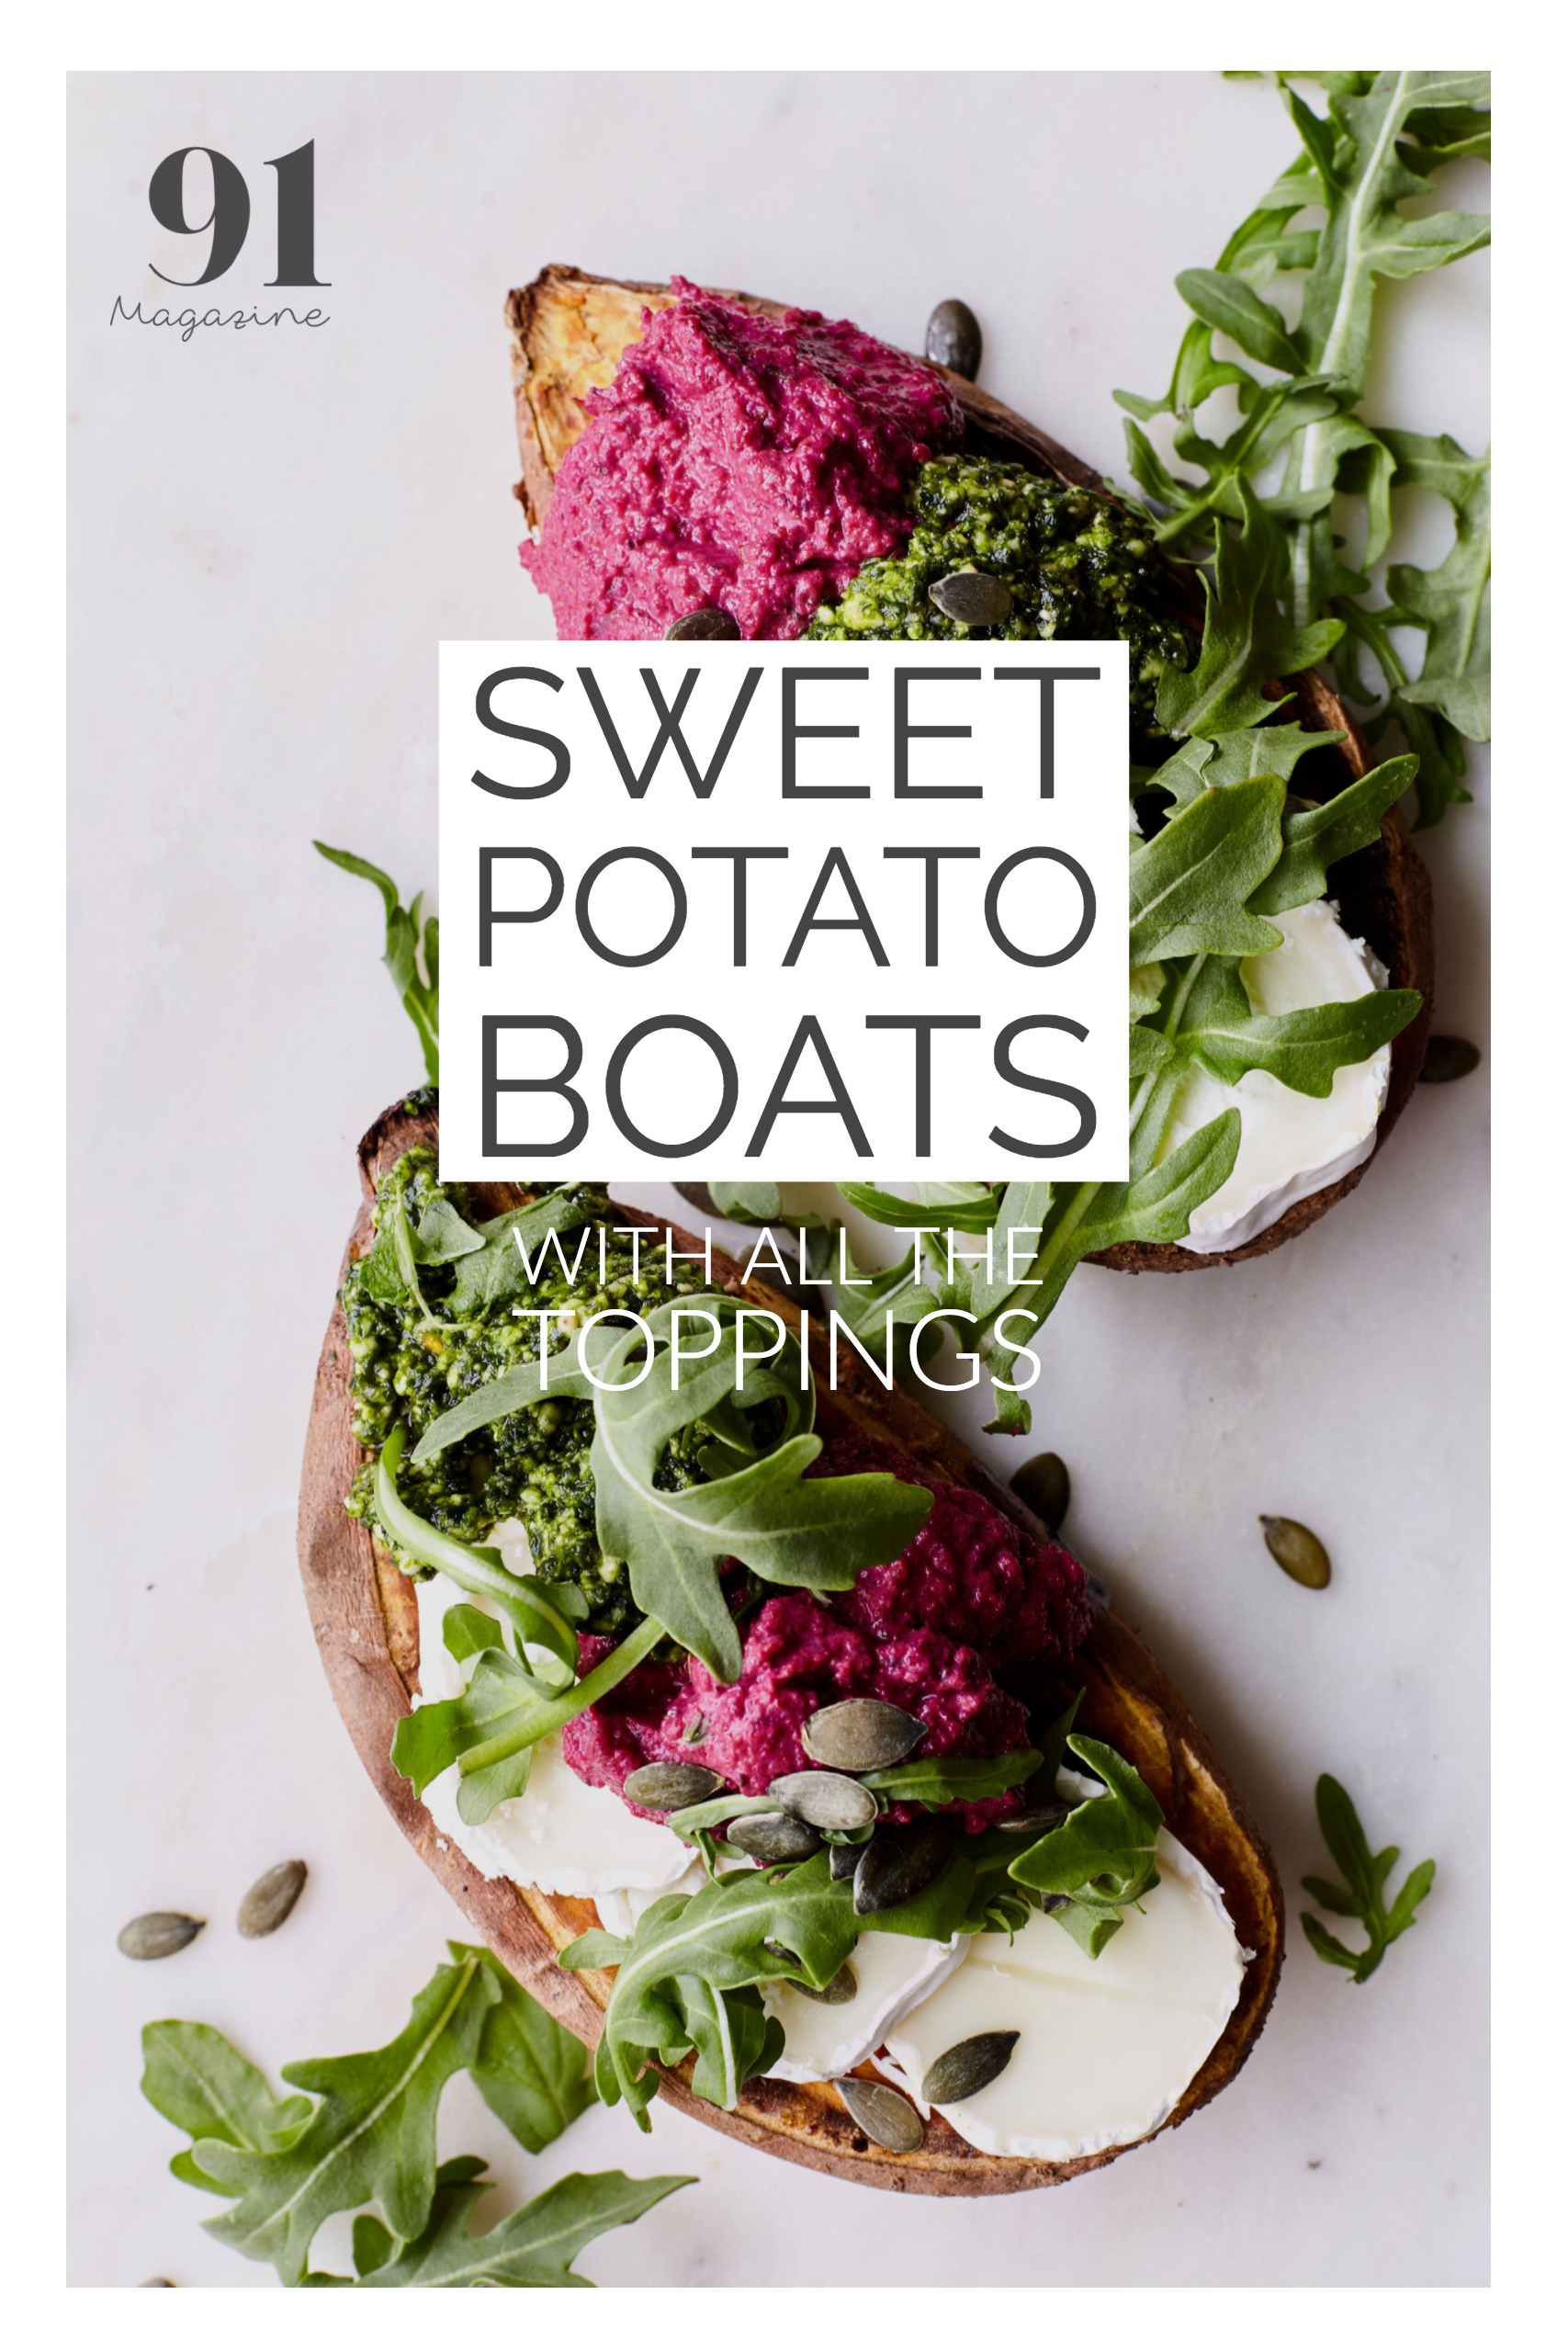 RECIPE: Sweet potato boats with all the toppings